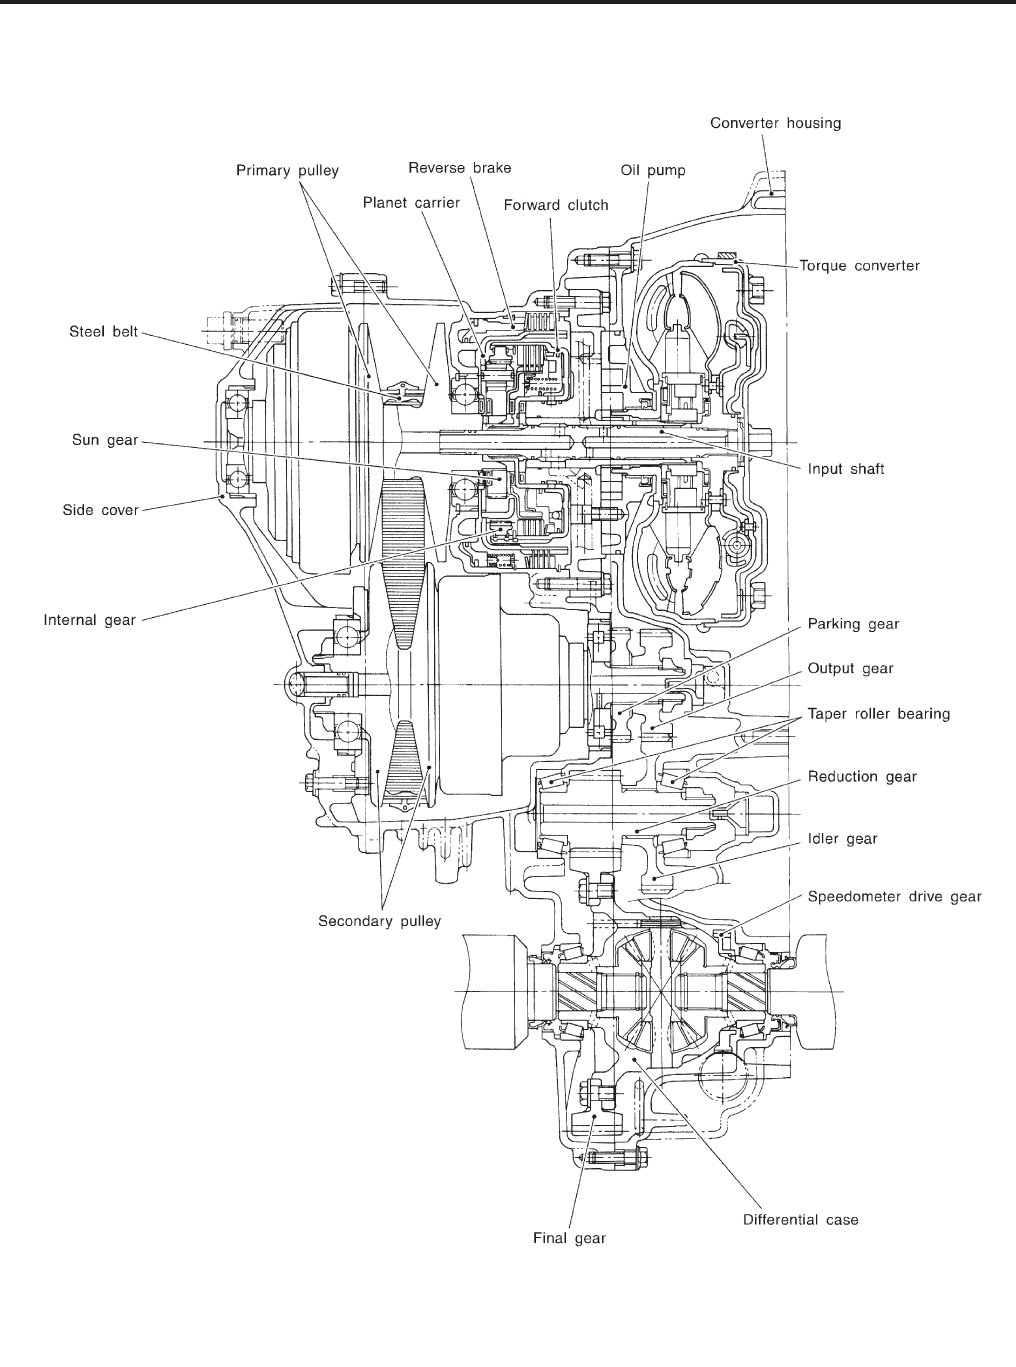 Toyota Tacoma 2015-2018 Service Manual: Neutral Position Switch Circuit